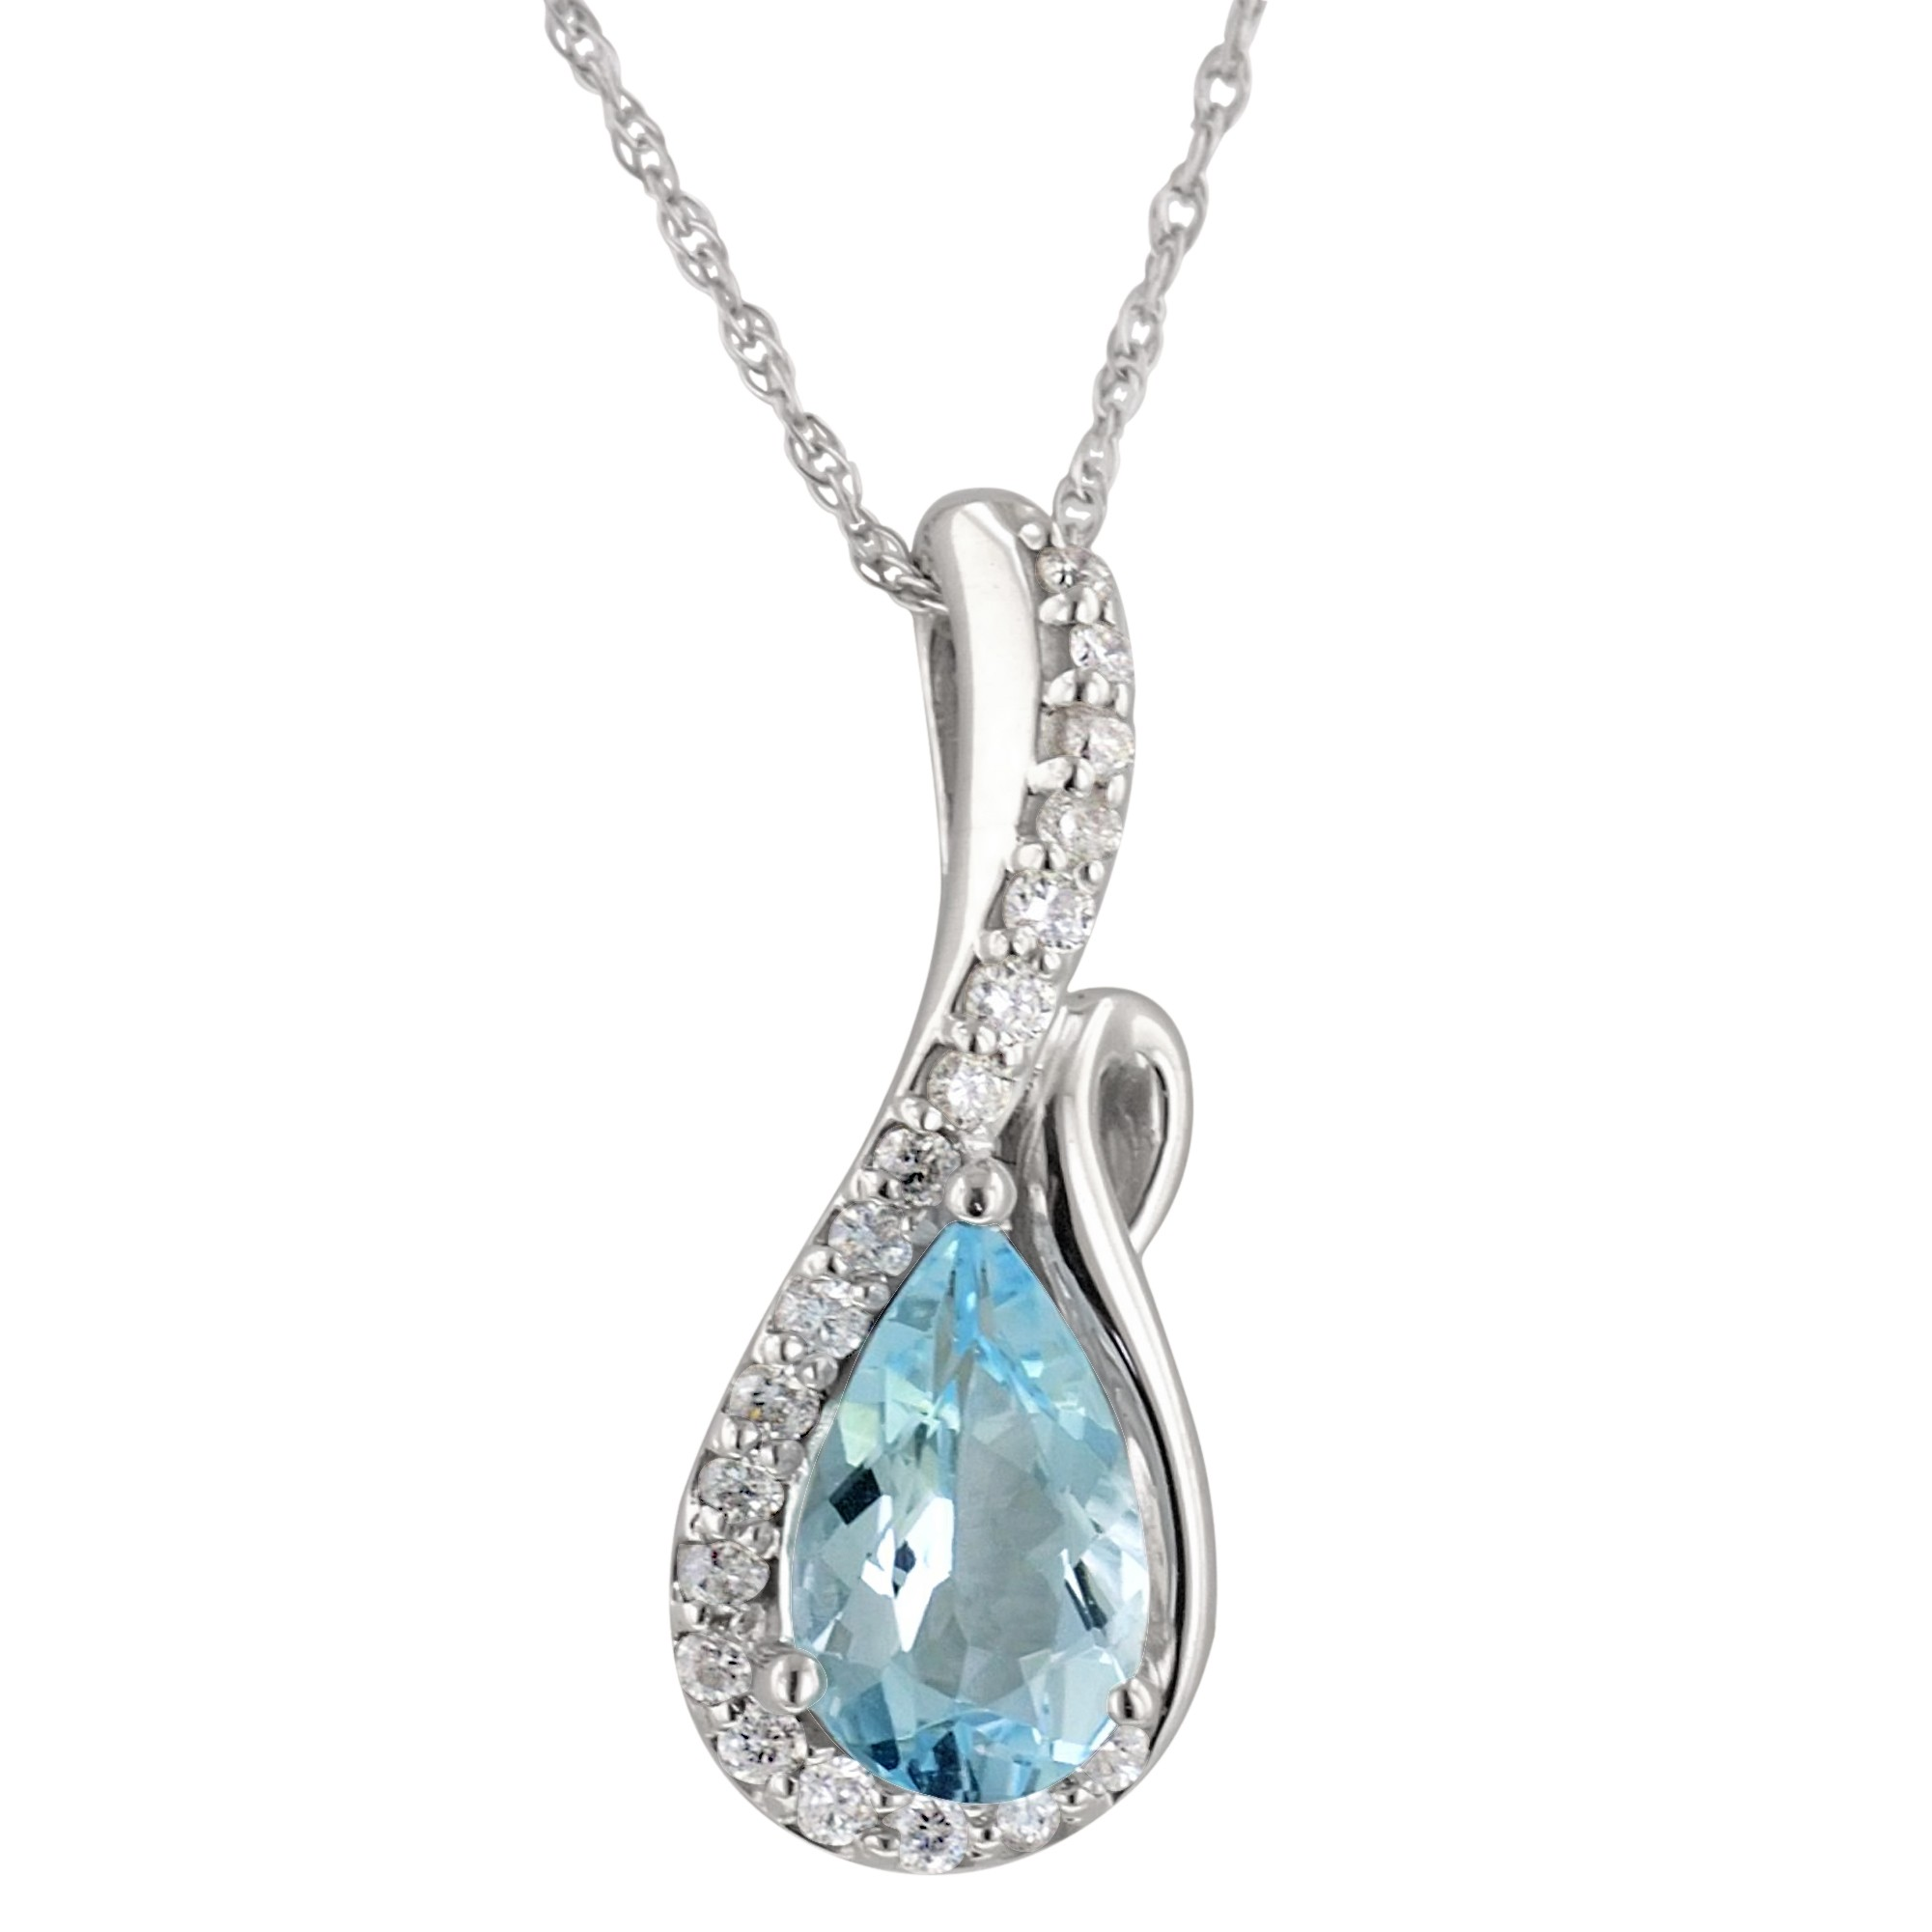 Get Aquamarine Necklace for its Beauty